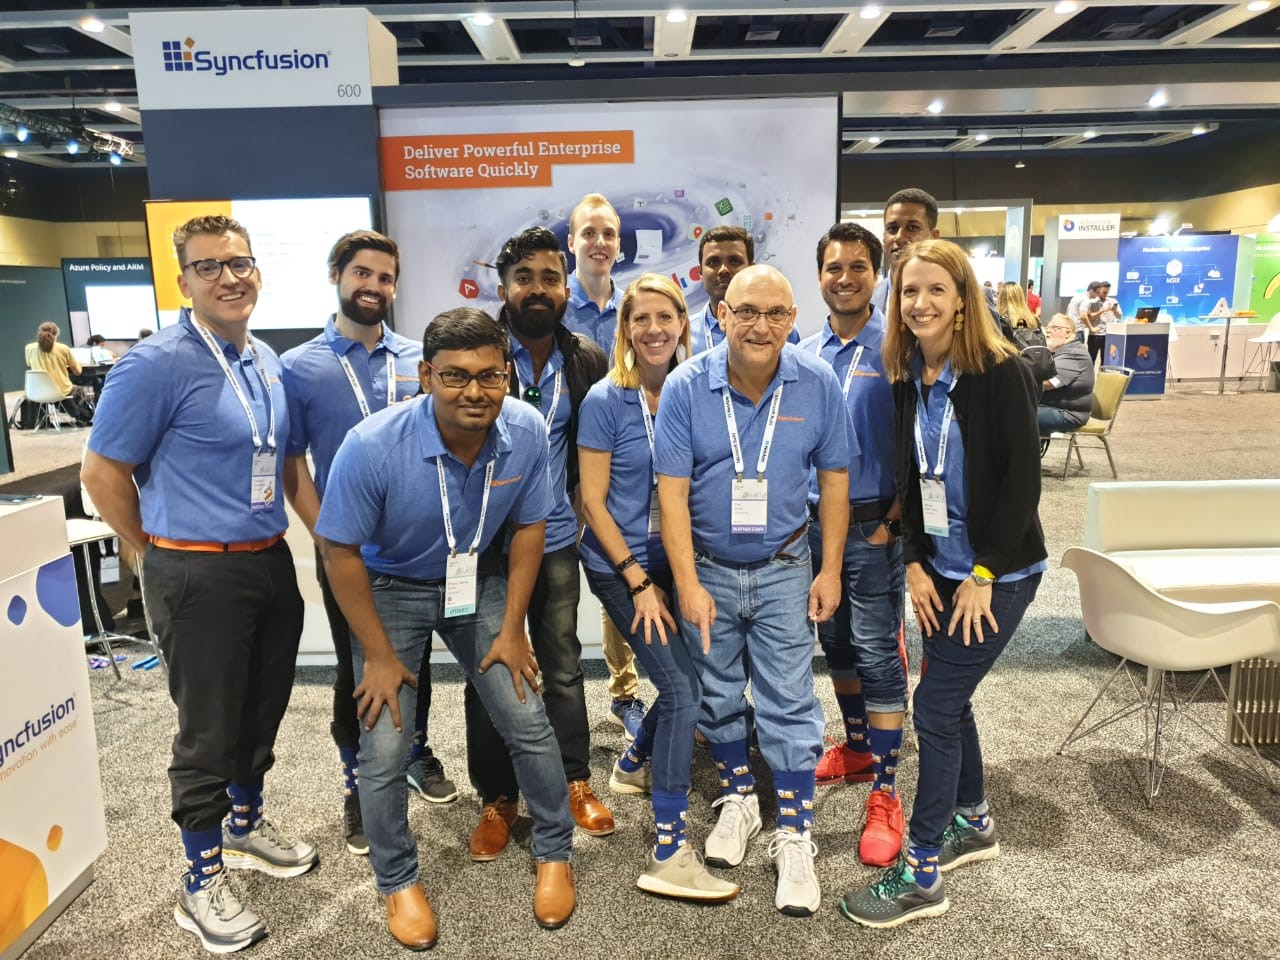 syncfusion staffers at booth